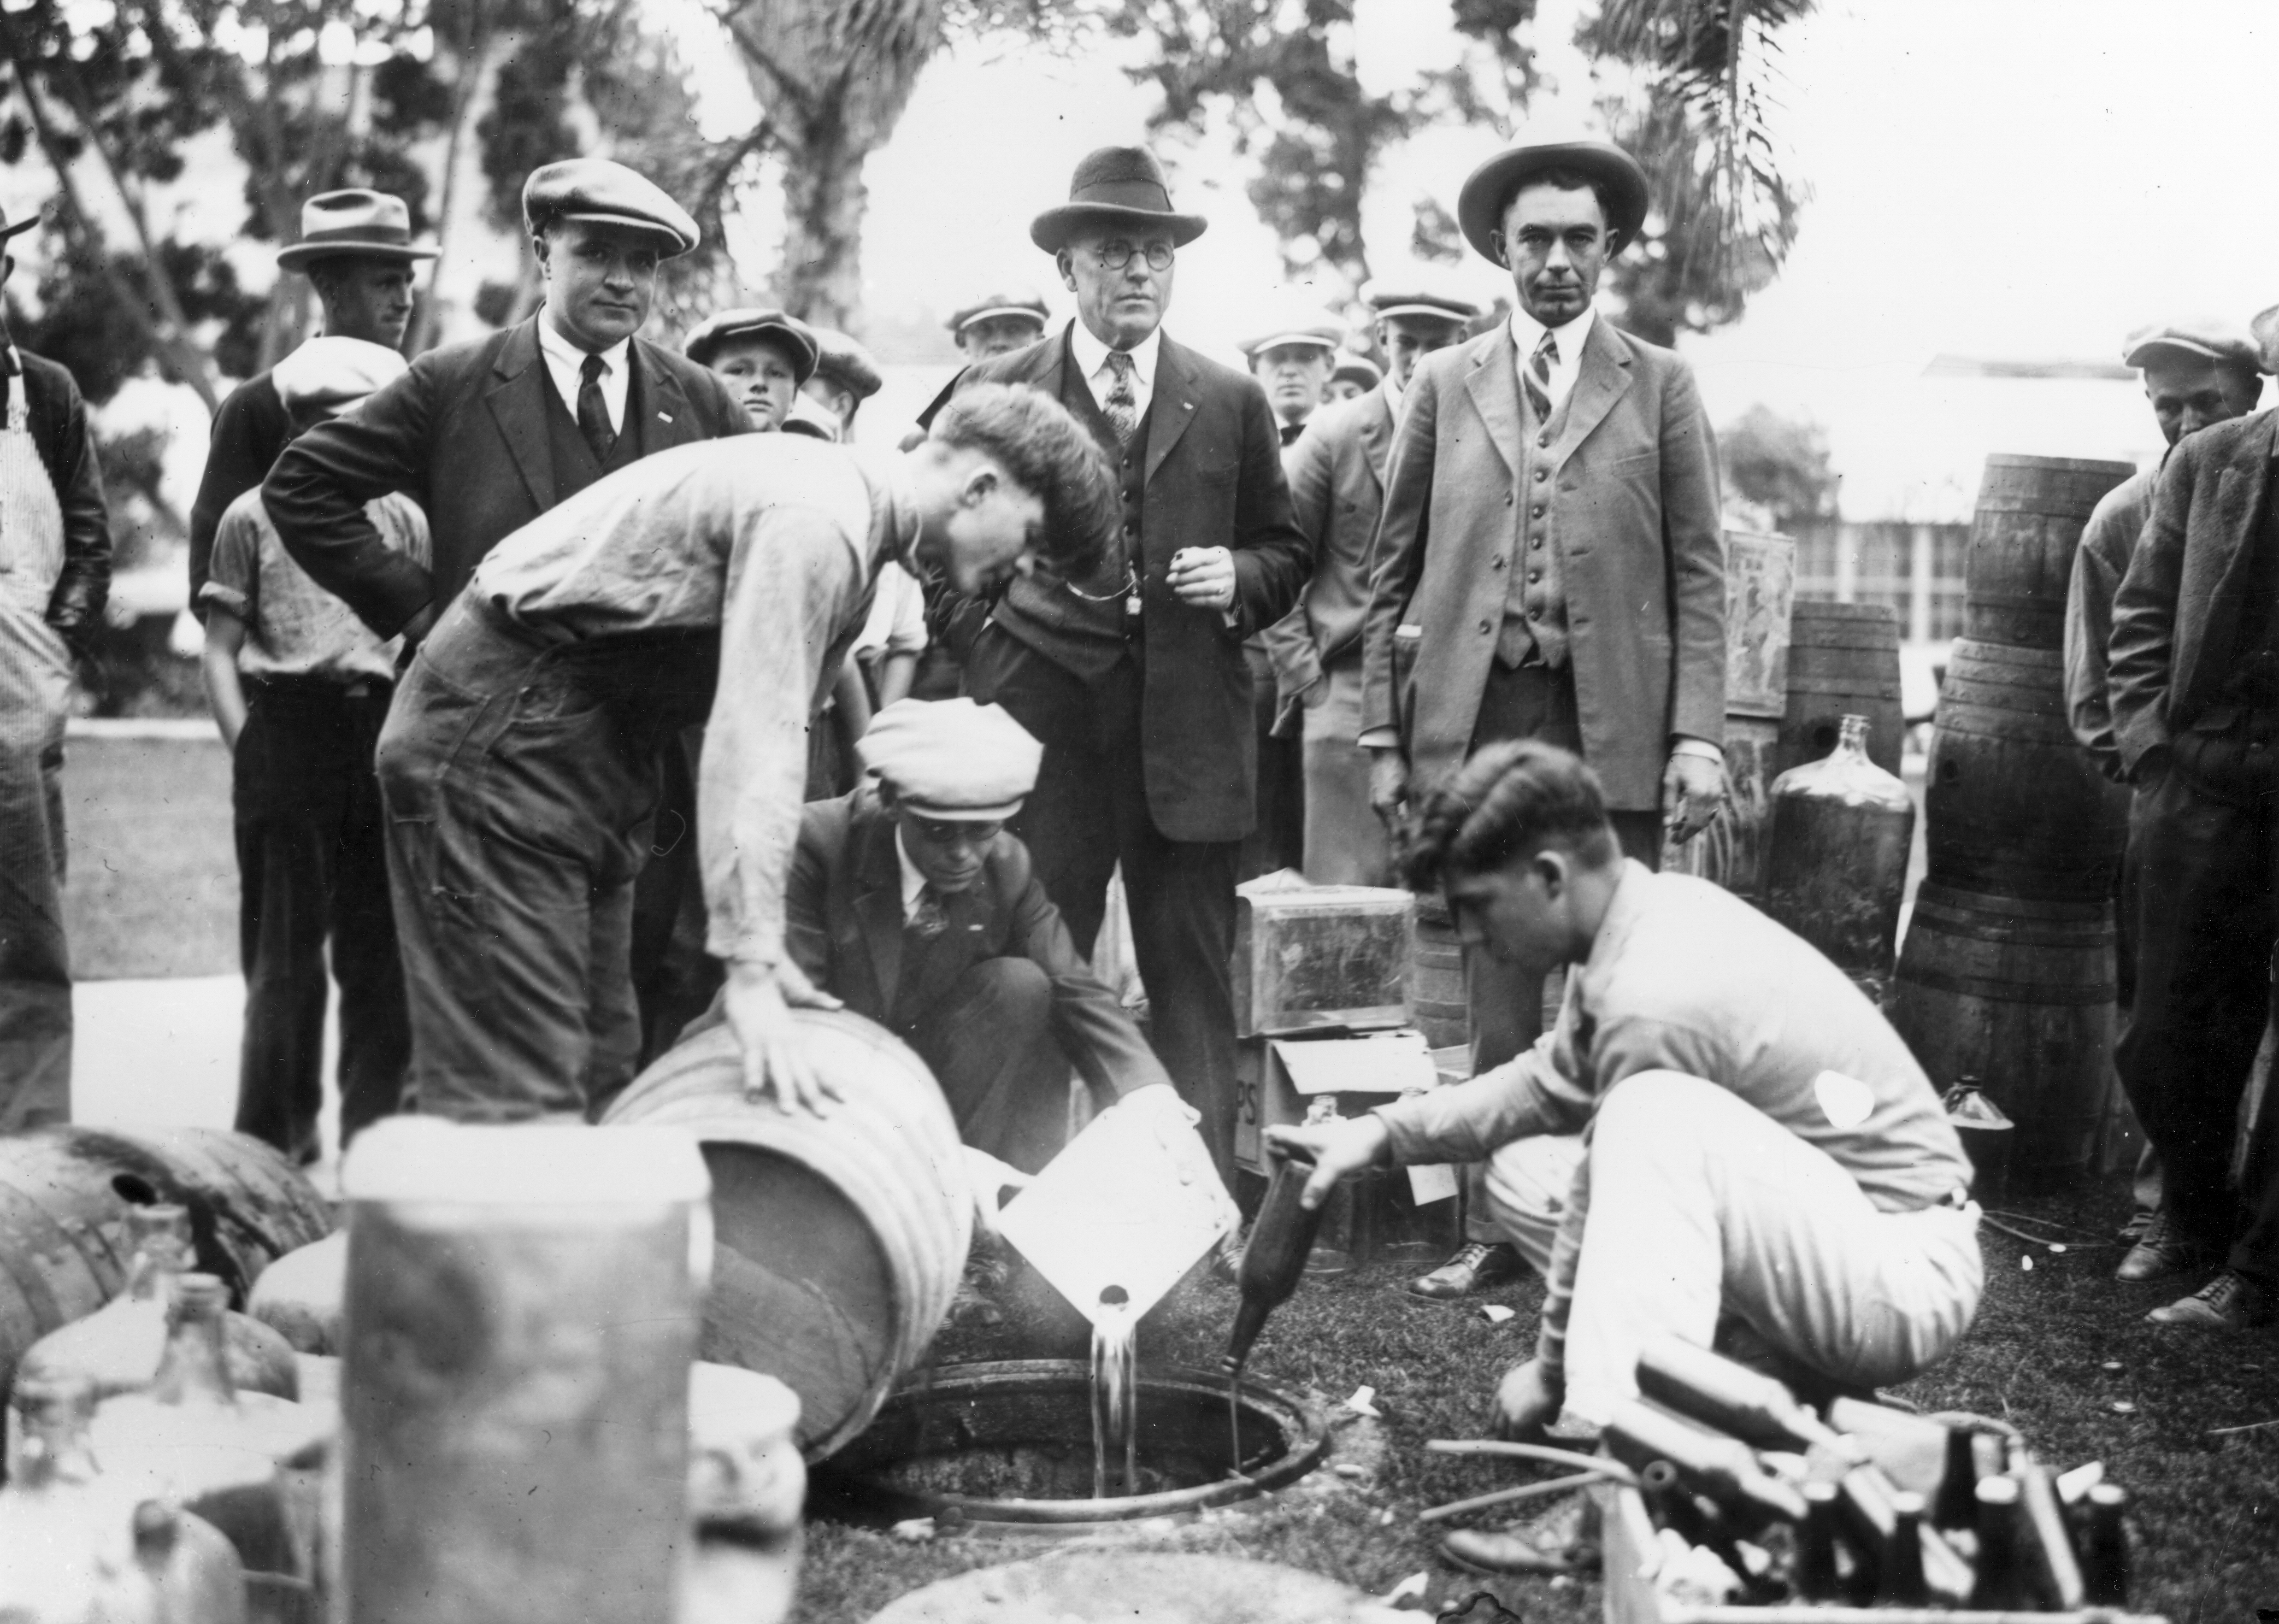 the eighteenth amendment the prohibition of alcohol in america Cat and mouse prohibition led to many more unintended consequences because of the cat and mouse nature of prohibition enforcement while the eighteenth amendment.